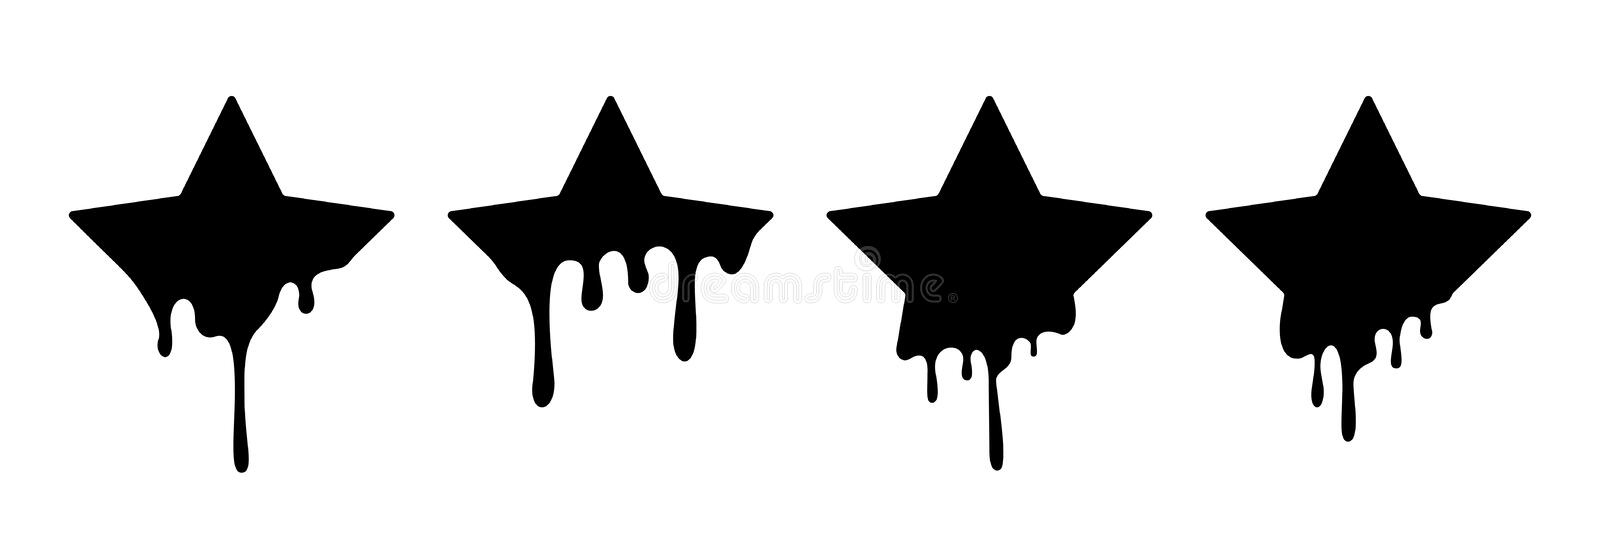 Paint drip stickers or star labels. Vector liquid drops icons for graffiti blob stickers royalty free illustration